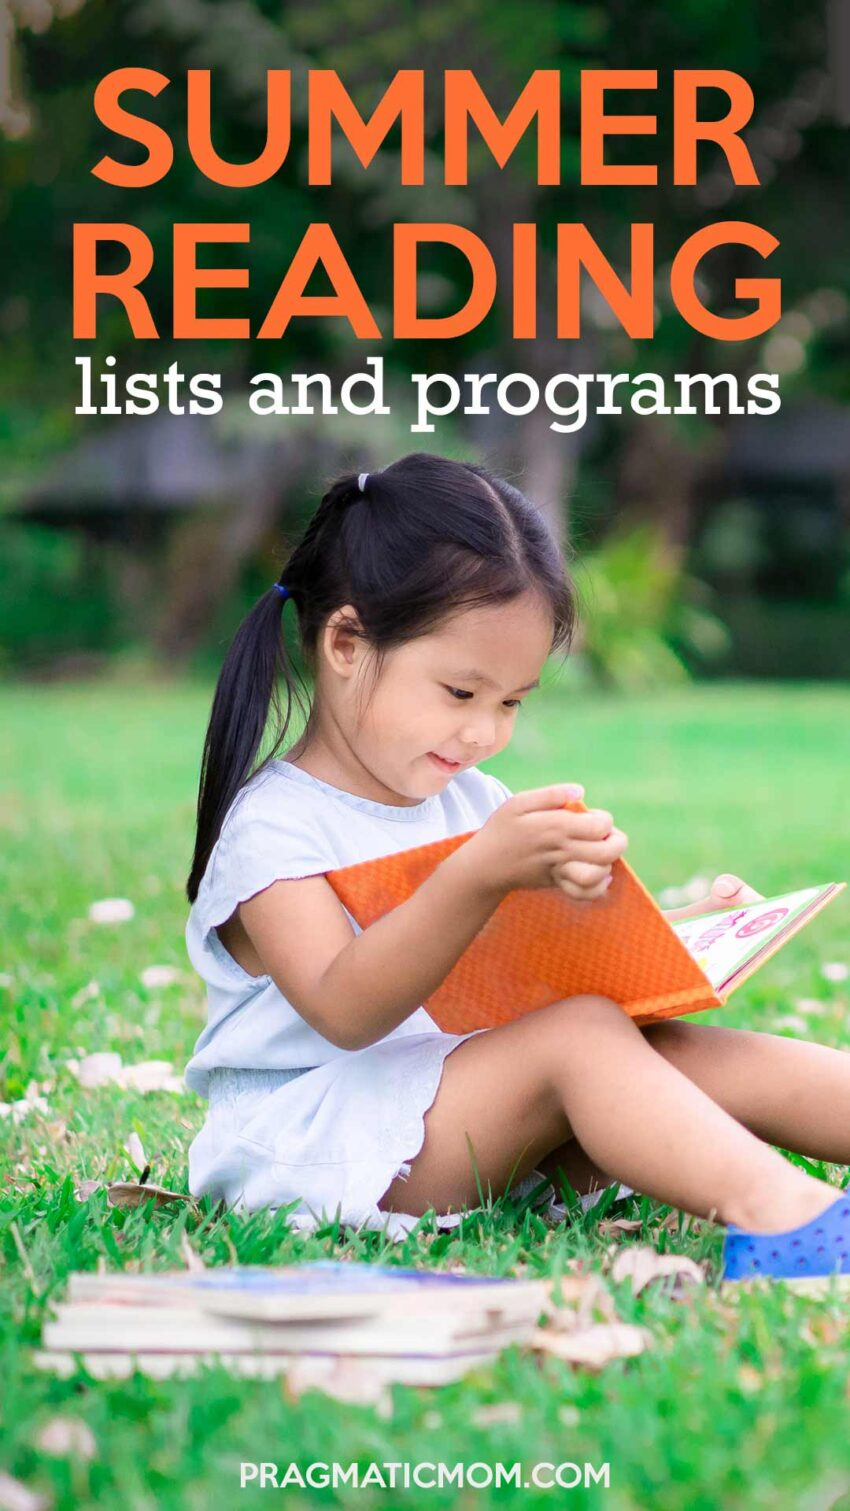 Summer Reading Lists and Programs for Kids